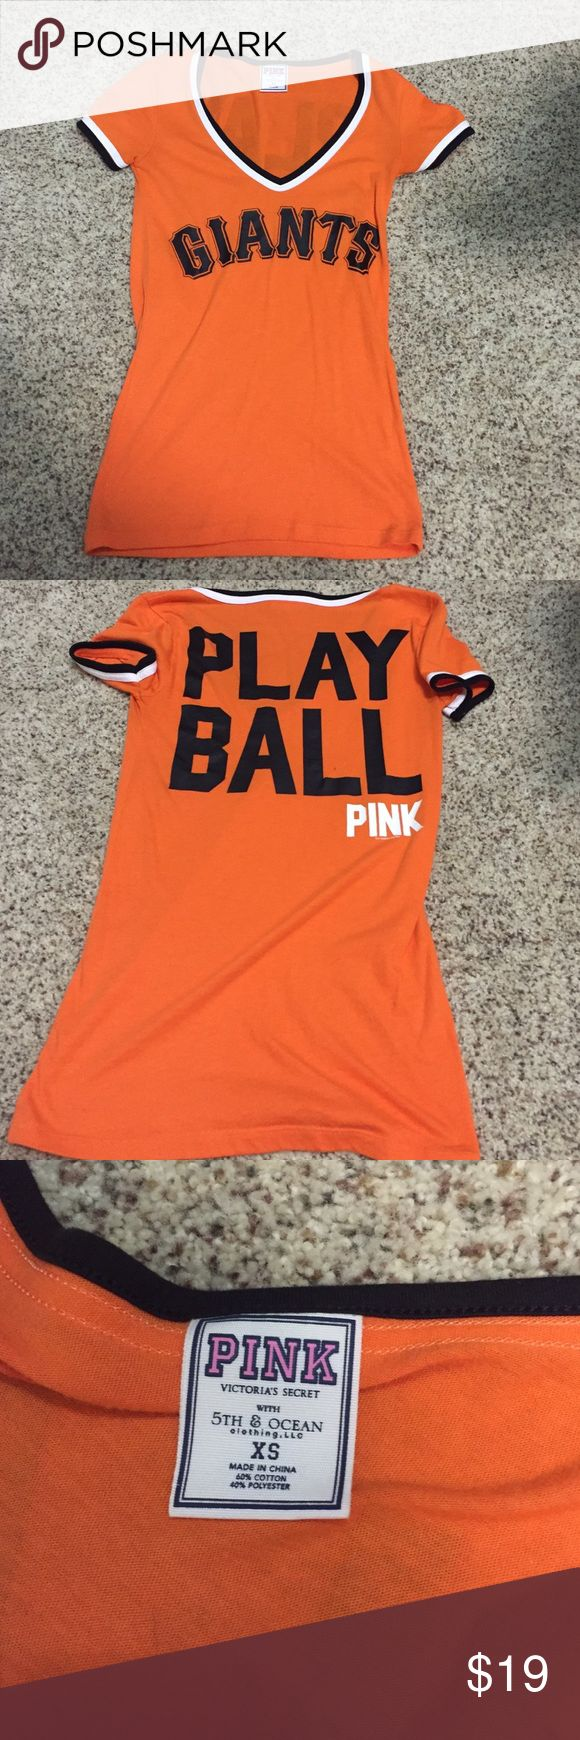 """Victoria Secret baseball tee Orange Giants baseball tee with """"play ball"""" on the back. V-neck, size xsmall. Orange tee, black letters, cap sleeve. Worn maybe 5 times to a little league baseball game. Excellent condition PINK Victoria's Secret Tops Tees - Short Sleeve"""